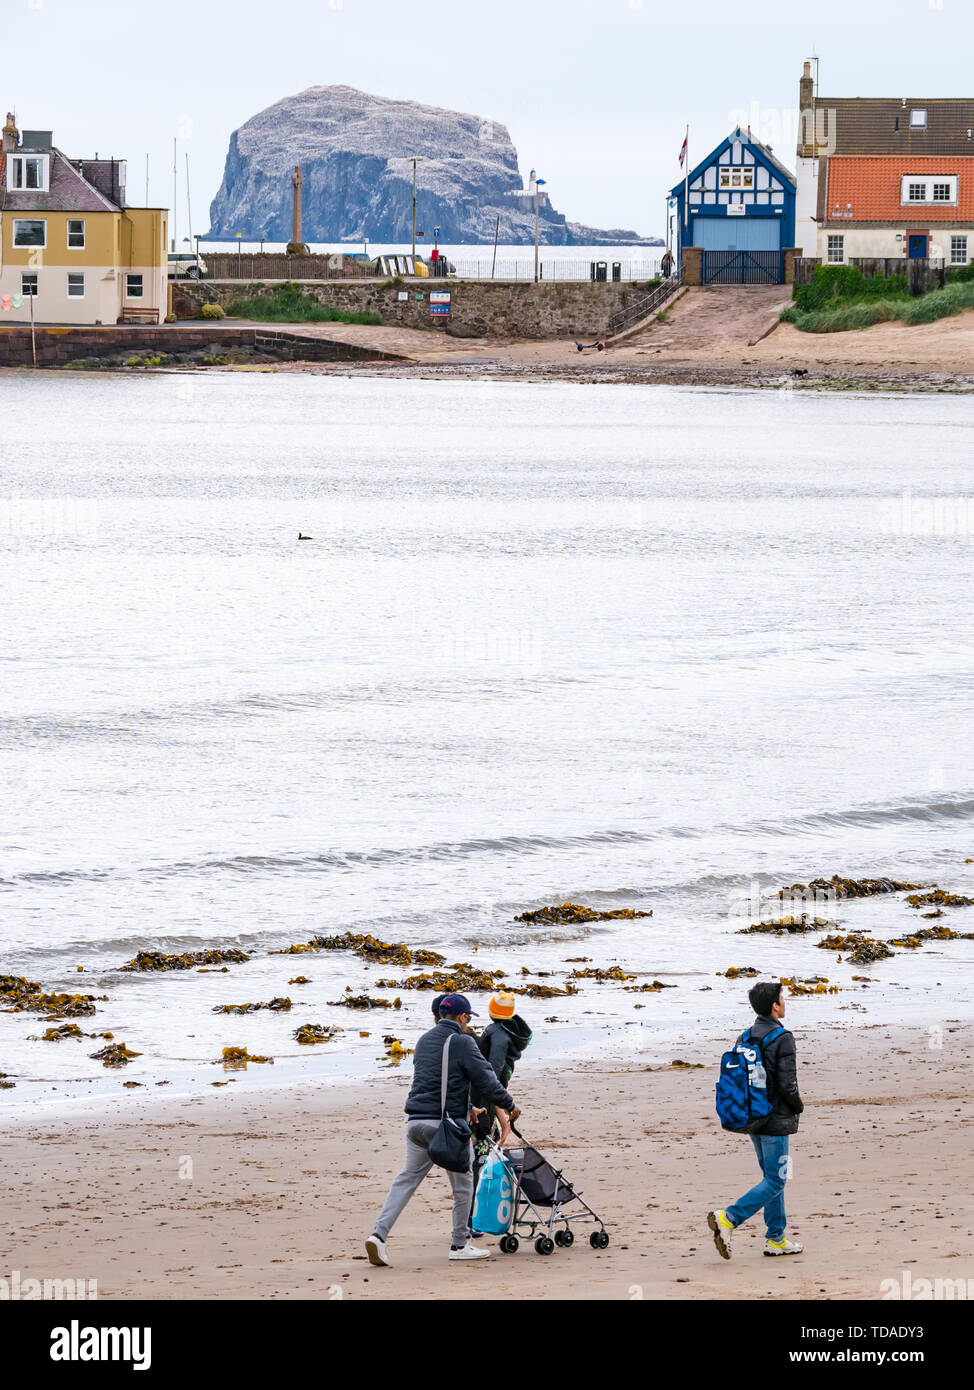 North Berwick, East Lothian, Scotland, United Kingdom. 14th June, 2019. UK Weather: After East Lothian suffered heavy rain the last few days, the weather has brightened, and people enjoy the outdoor pursuits in the seaside town. A family walking on West Bay beach. Credit: Sally Anderson/Alamy Live News Credit: Sally Anderson/Alamy Live News - Stock Image